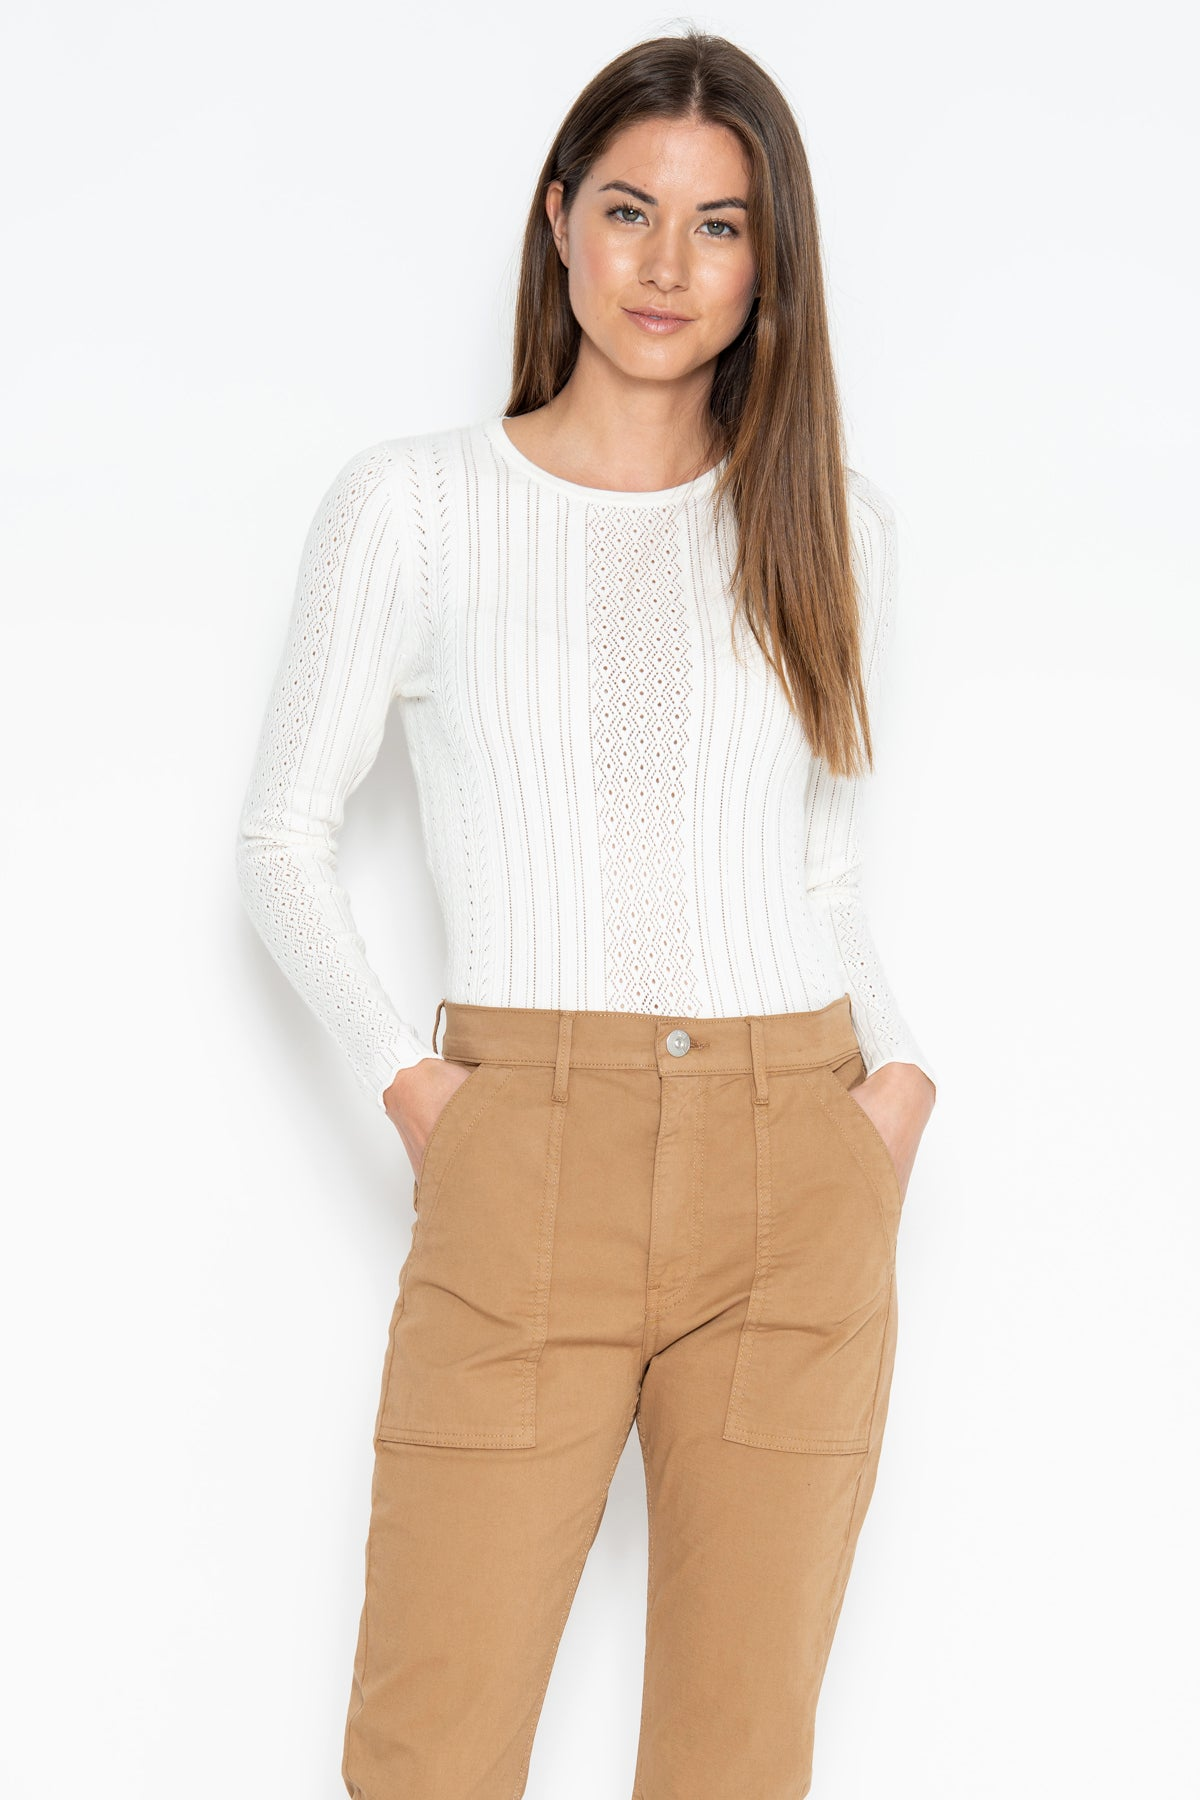 Jilly L/S Top - Starch